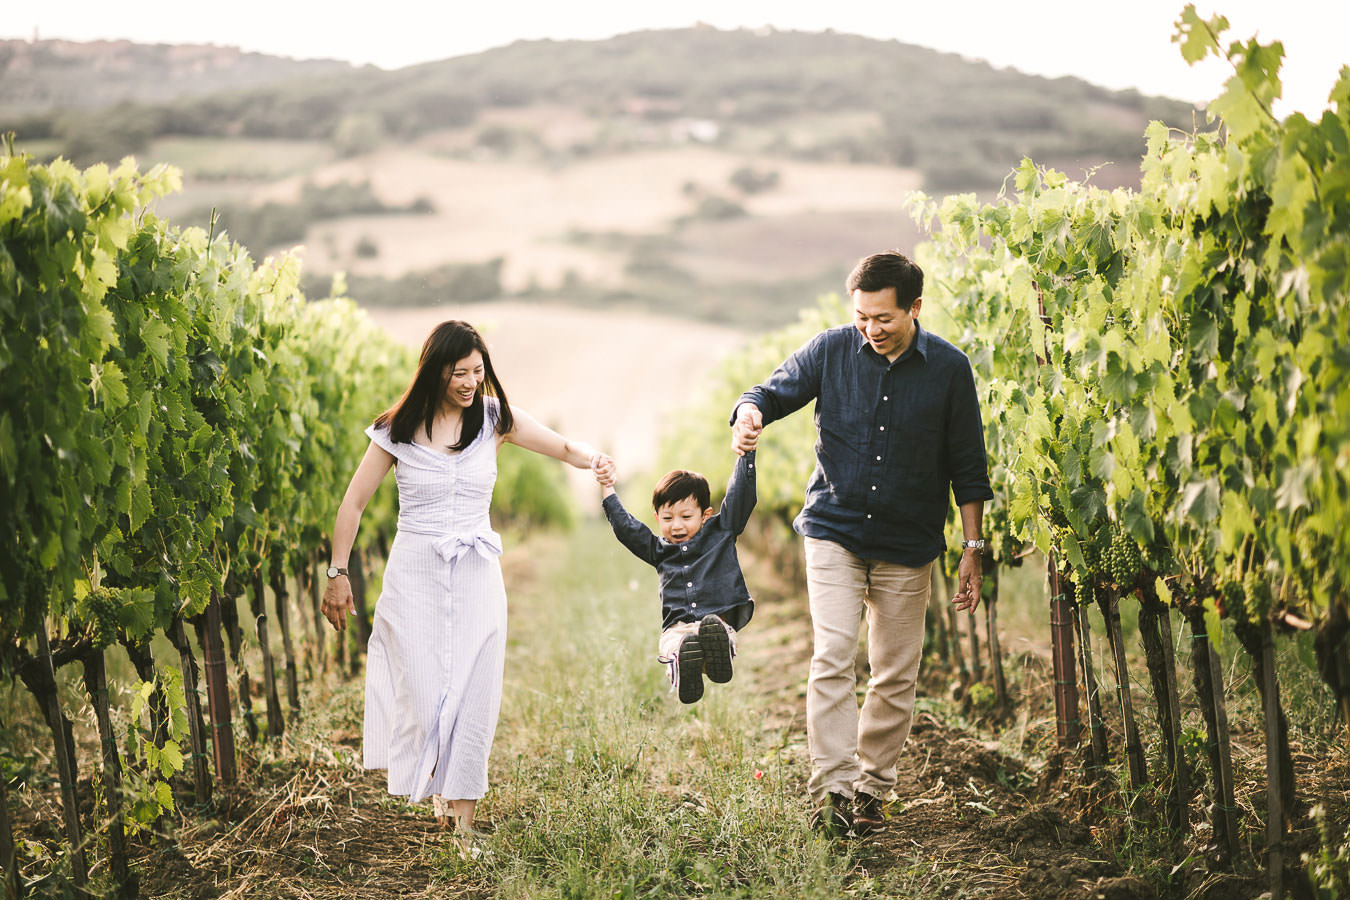 Are you looking for a special gift for your family and you? A family photoshoot is just what you need… get inspired by this cute family reunion session in Tuscany!